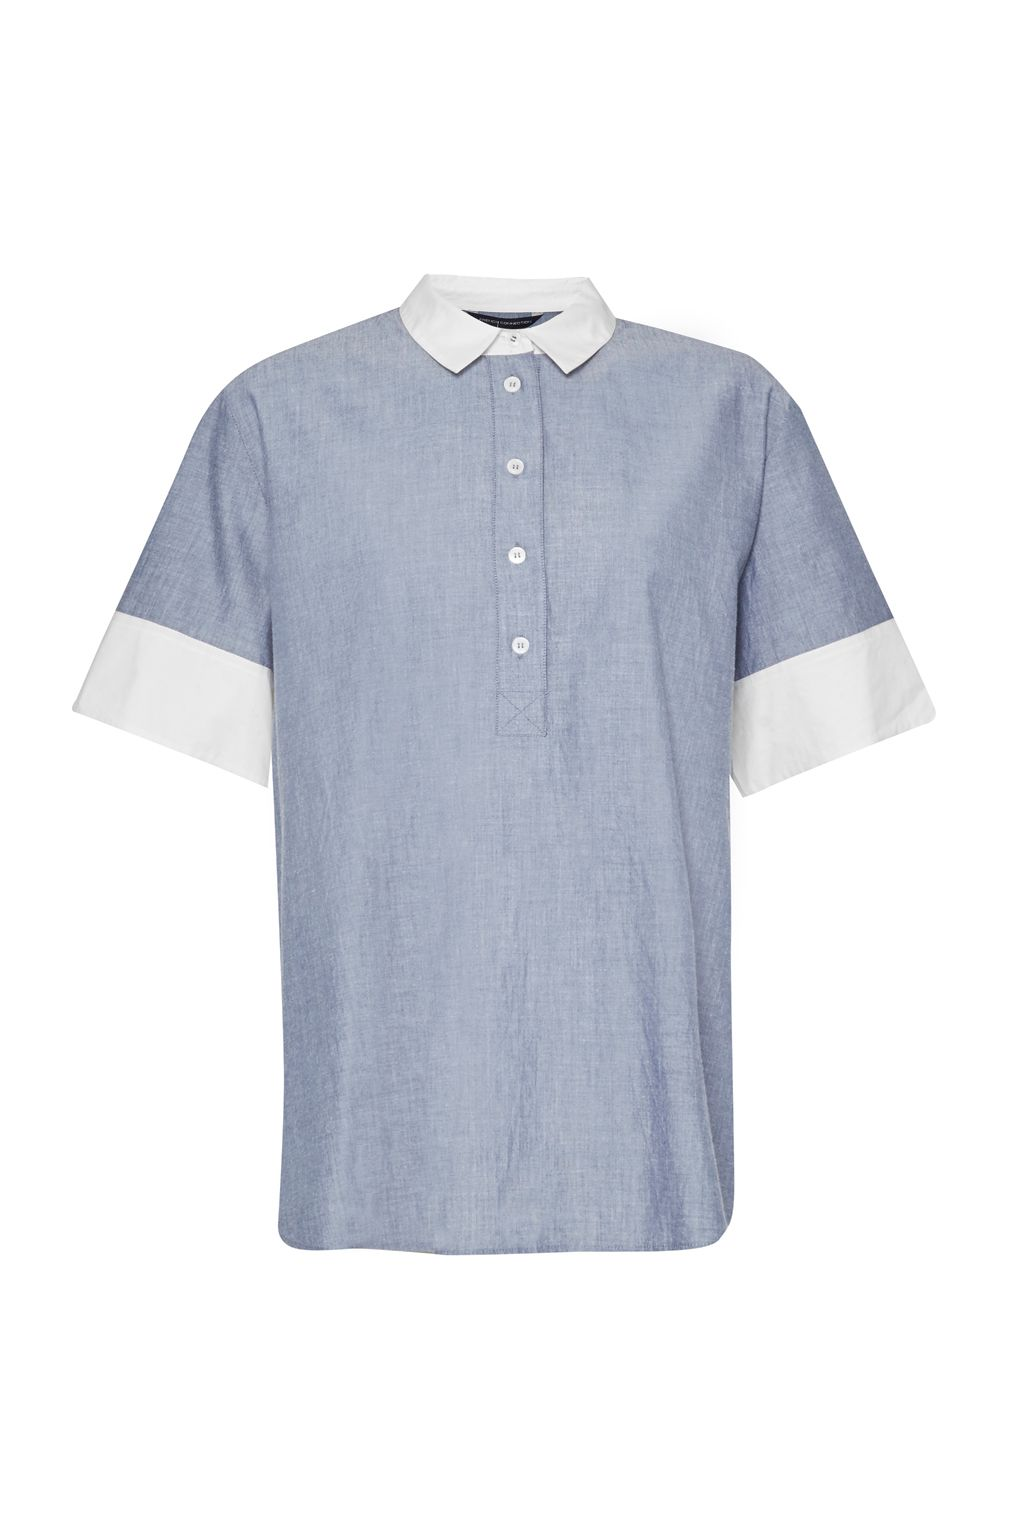 French Connection Kyra Cotton Short Sleeve Shirt, Blue